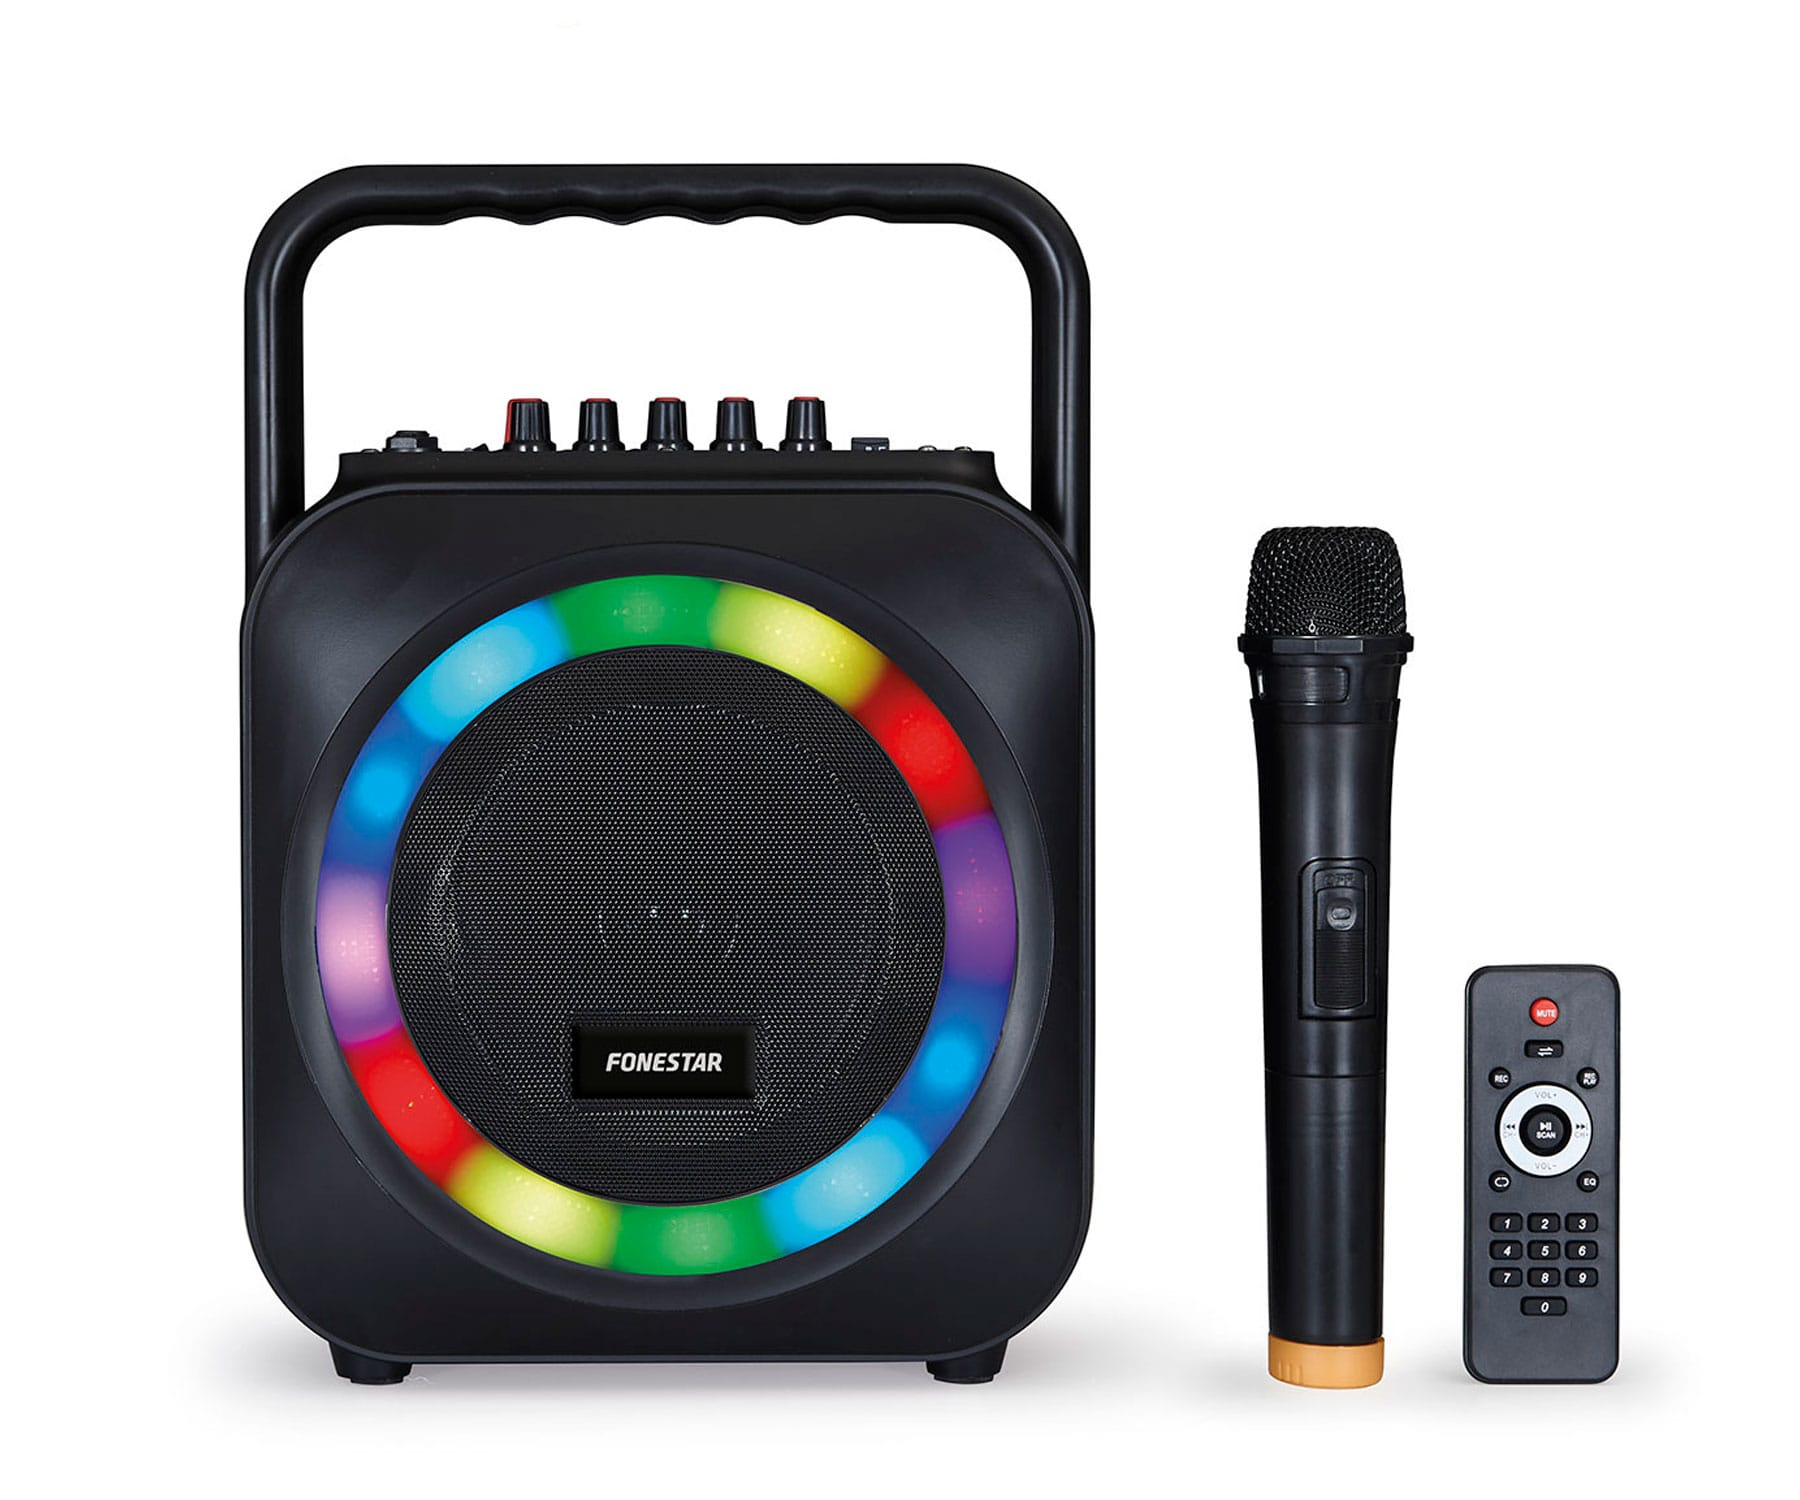 FONESTAR BOX-35LED ALTAVOZ PORTÁTIL KARAOKE BLUETOOTH USB SD LUCES LED